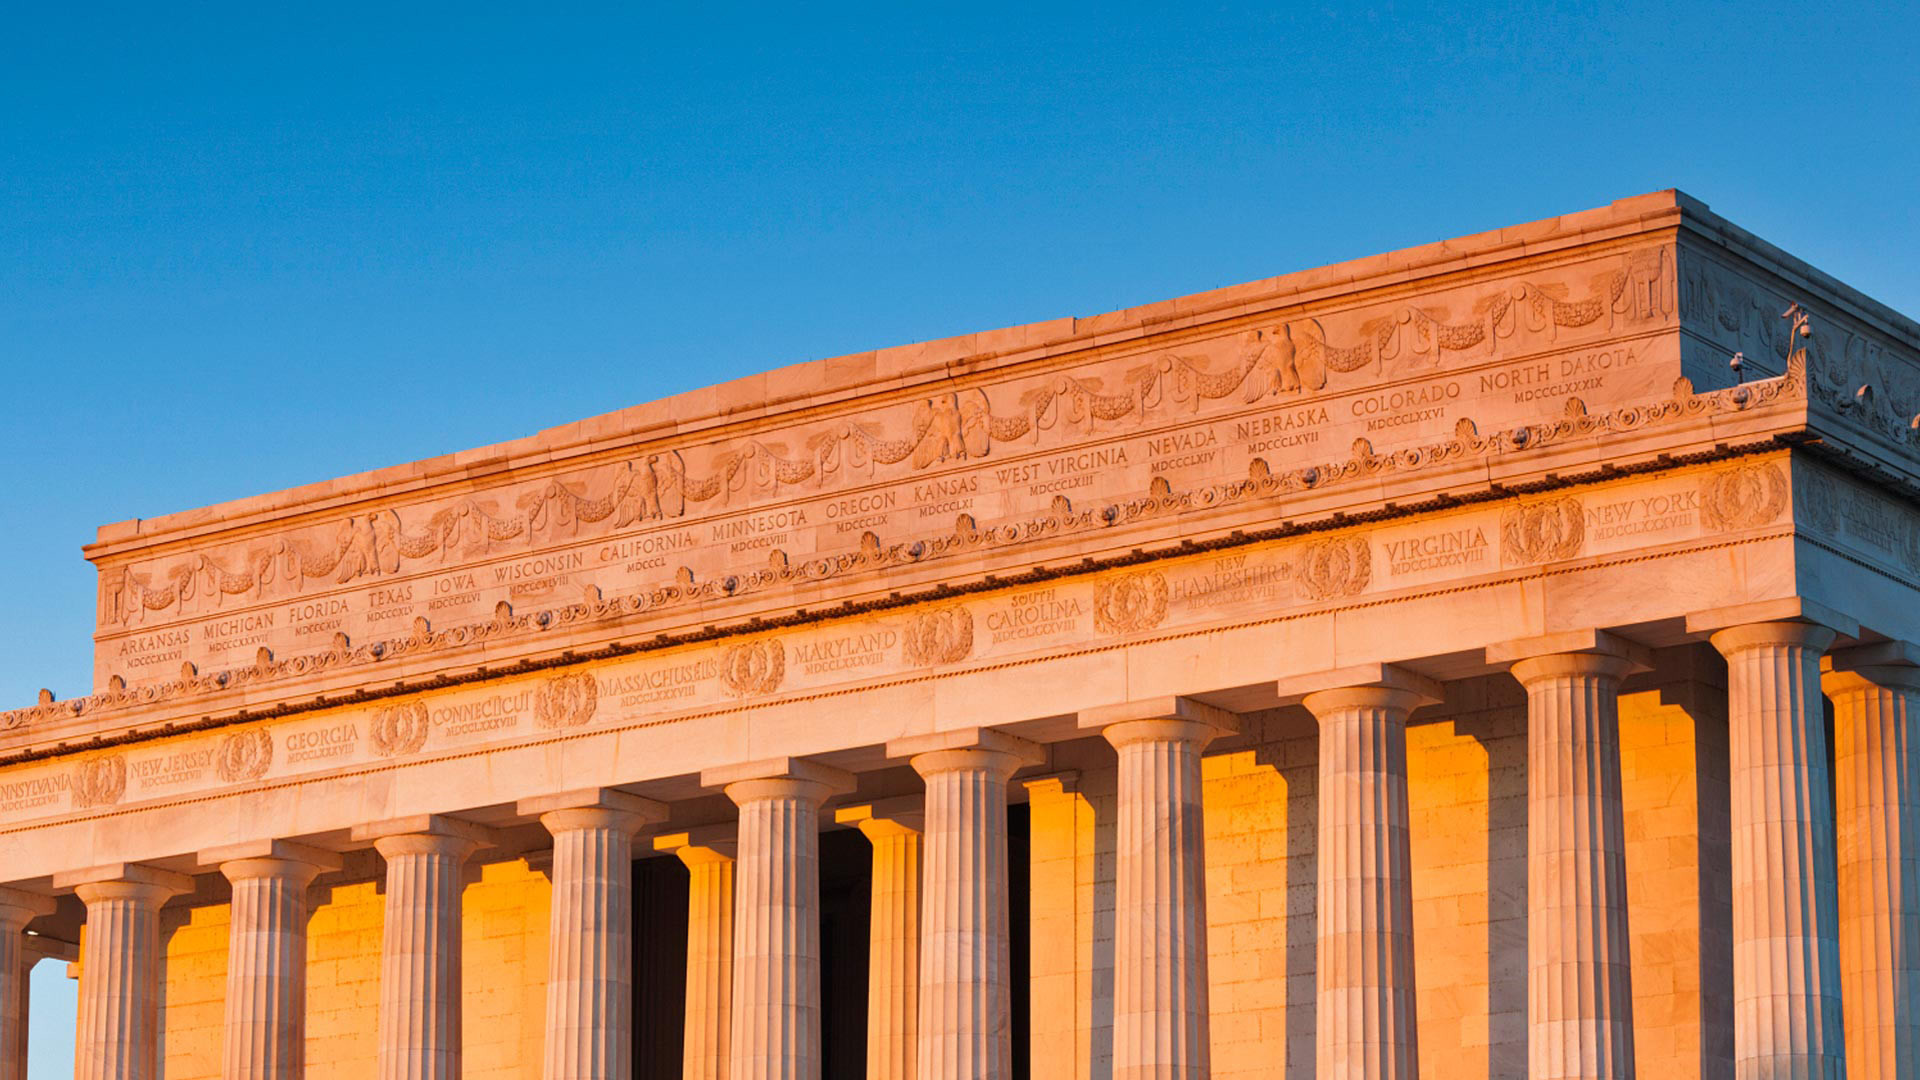 Res: 1920x1080, Best Wallpaper Of The Lincoln Memorial In Washington D.C.